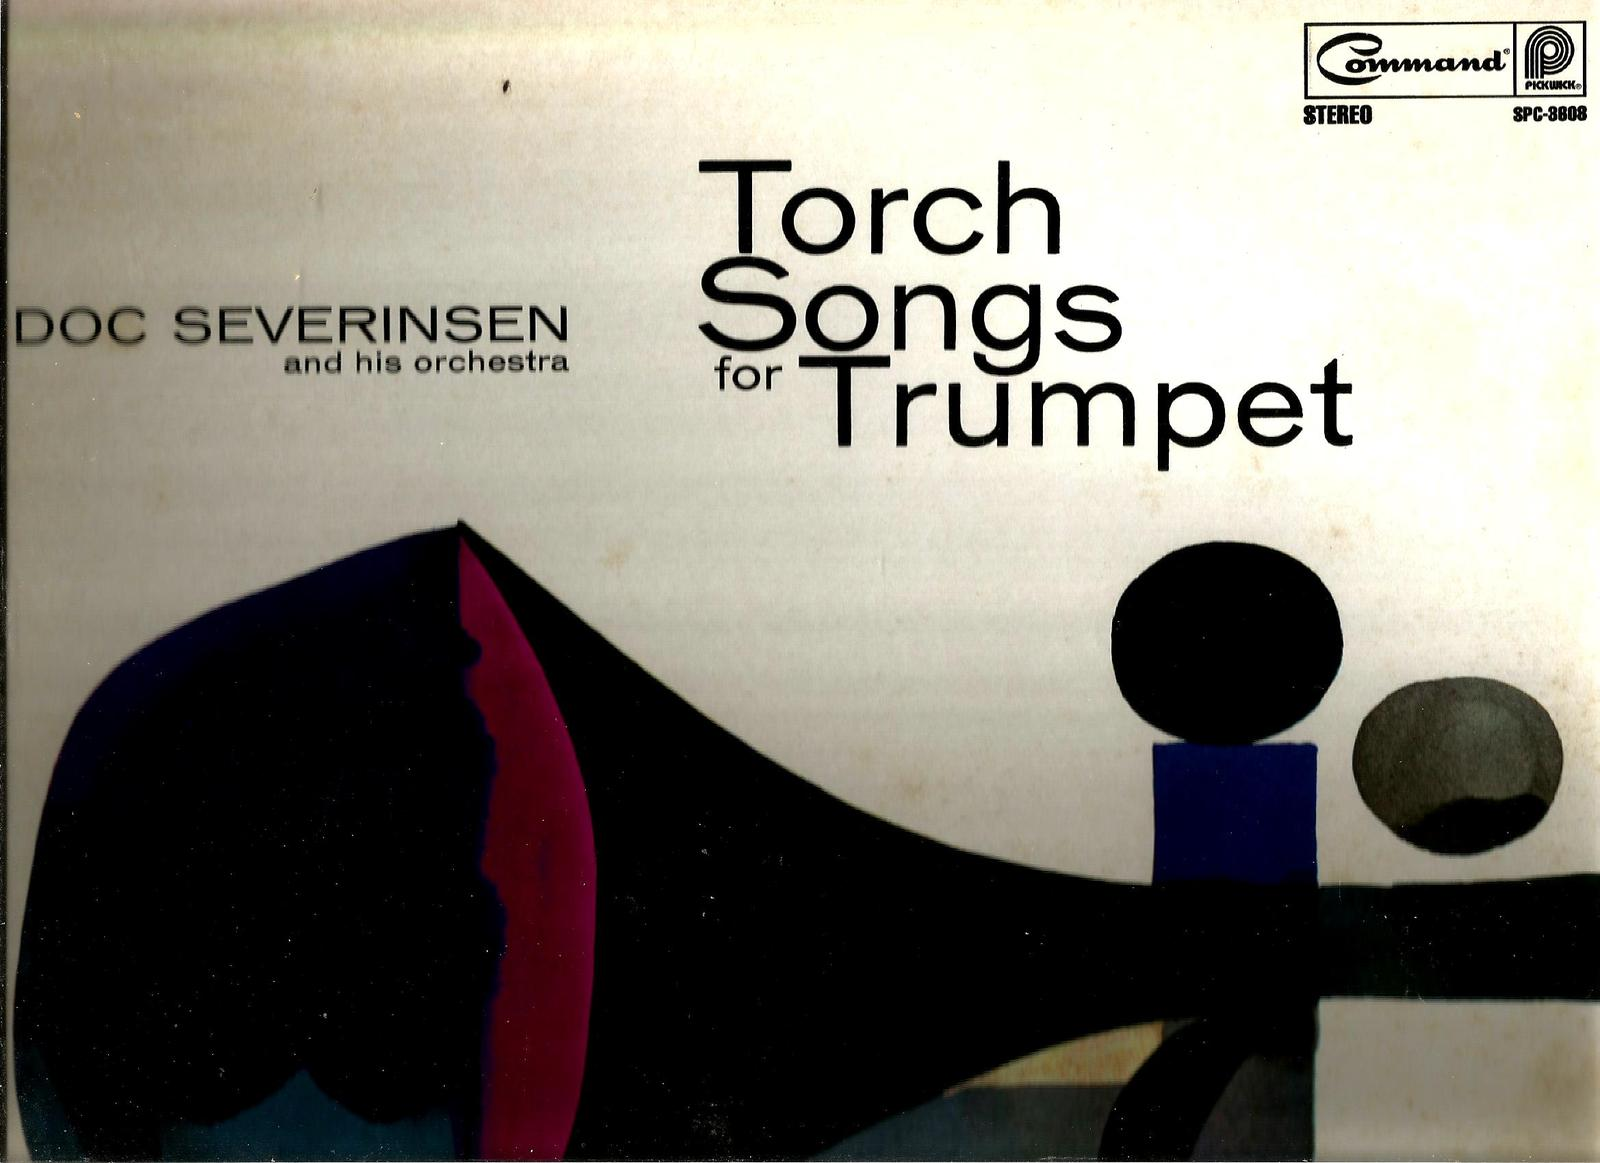 DOC  SEVERINSEN  * TORCH SONGS FOR TRUMPET *  L P  STEREO